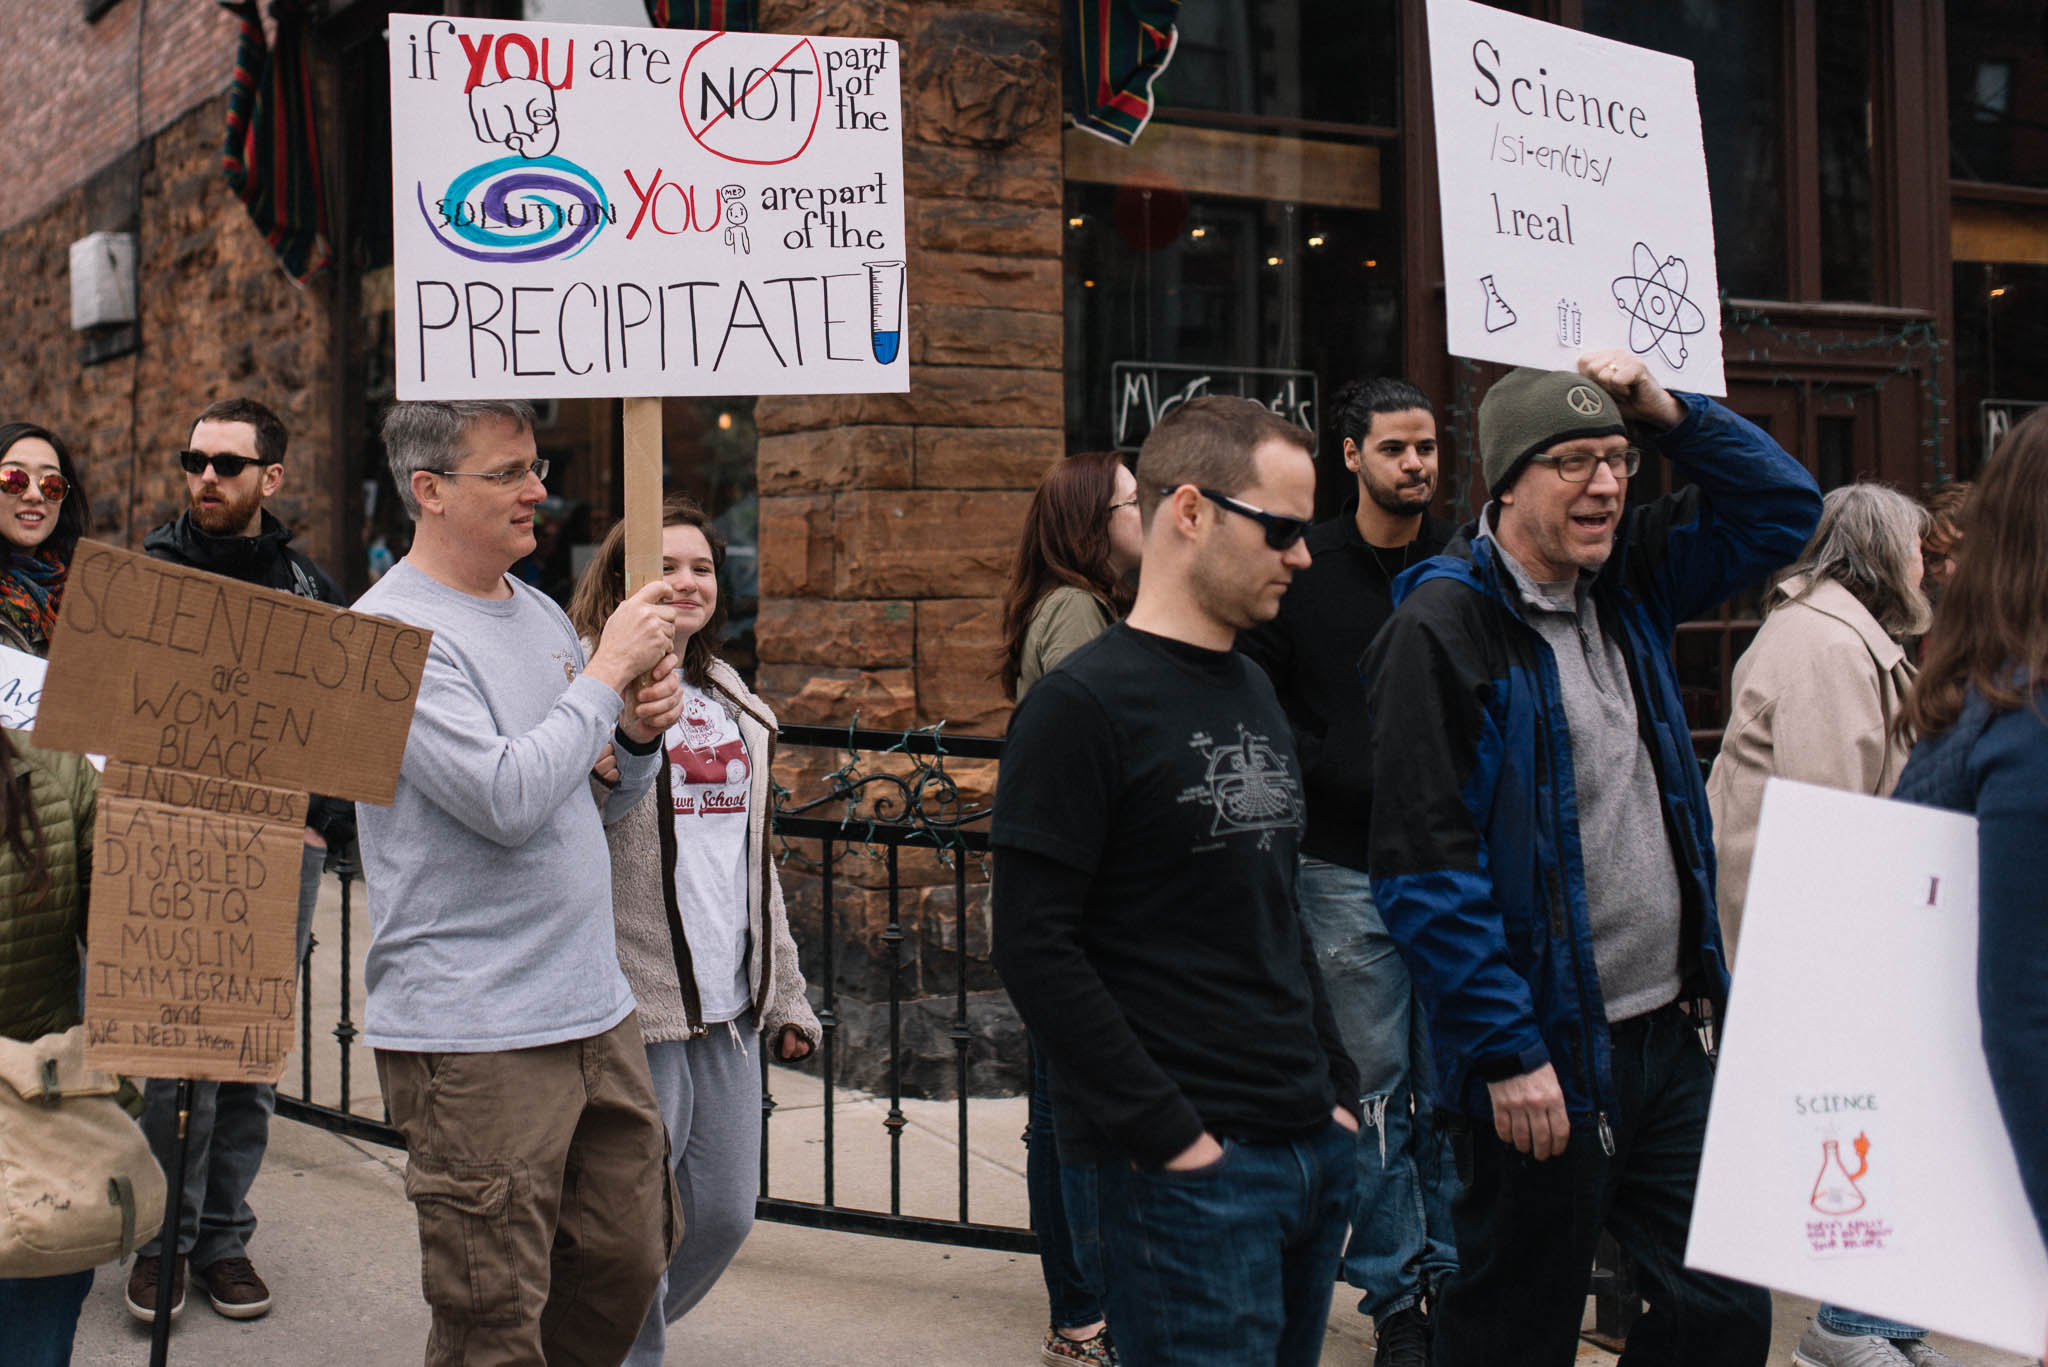 march-for-science-albany-ny-2017-134